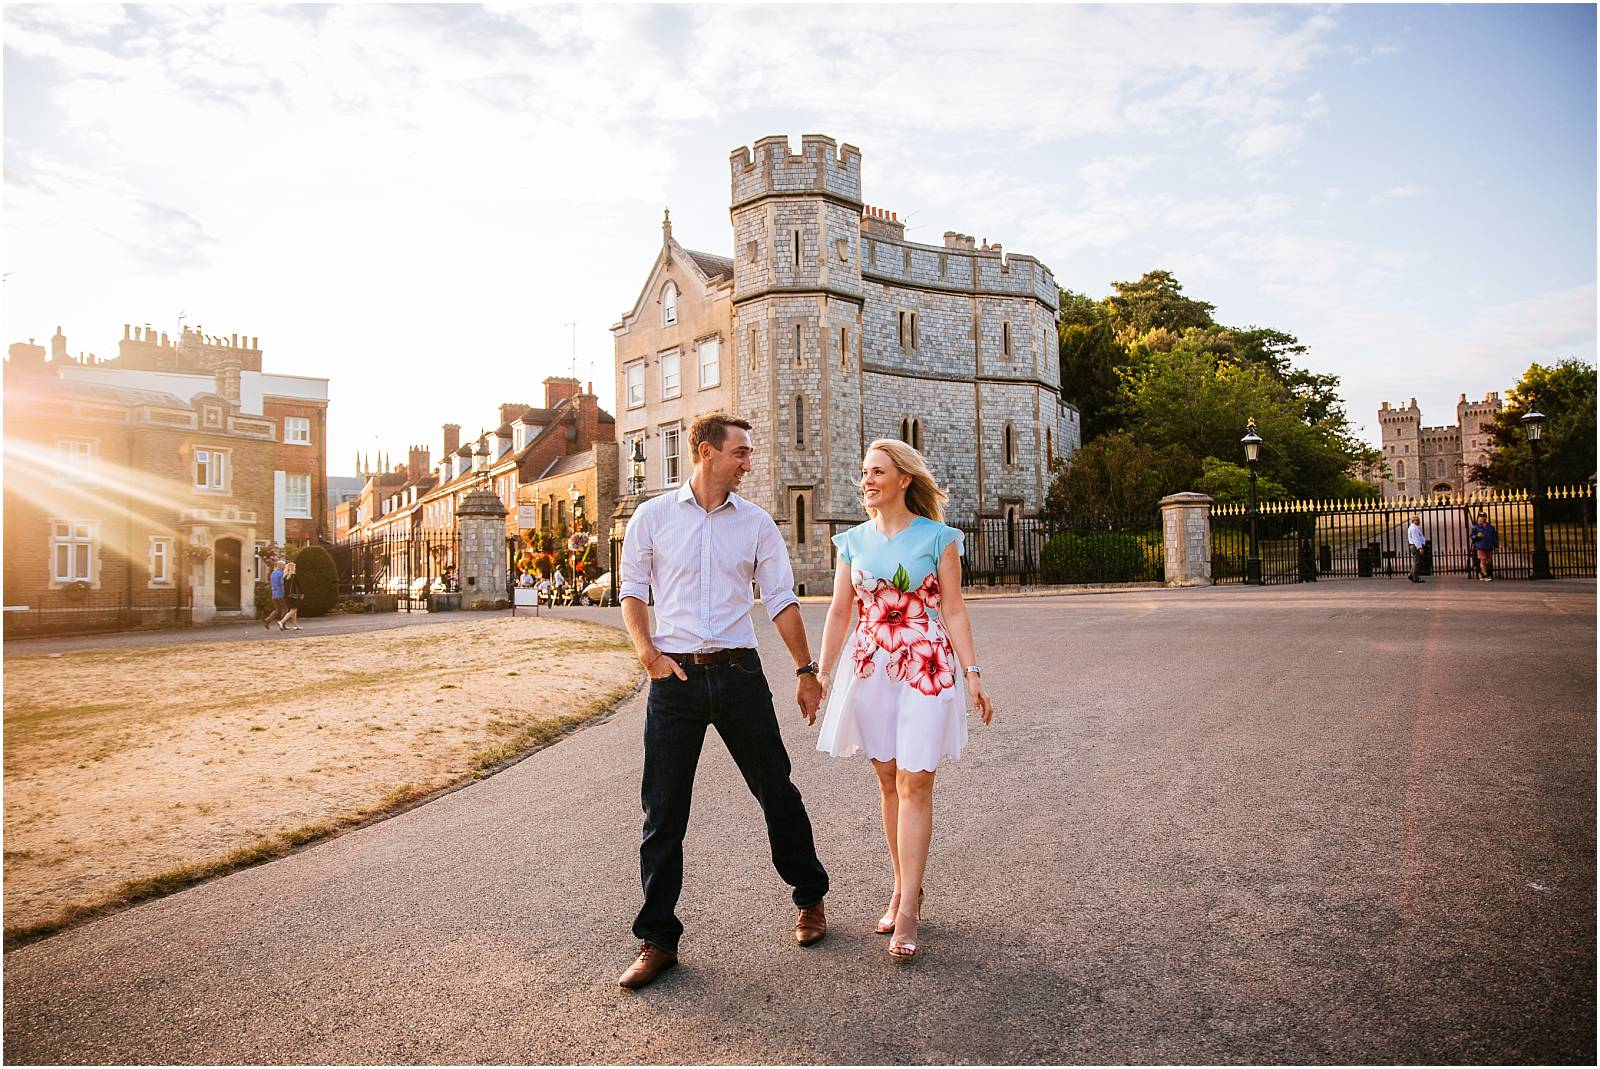 Windsor Engagement Photography – Jenny & Neil's evening shoot